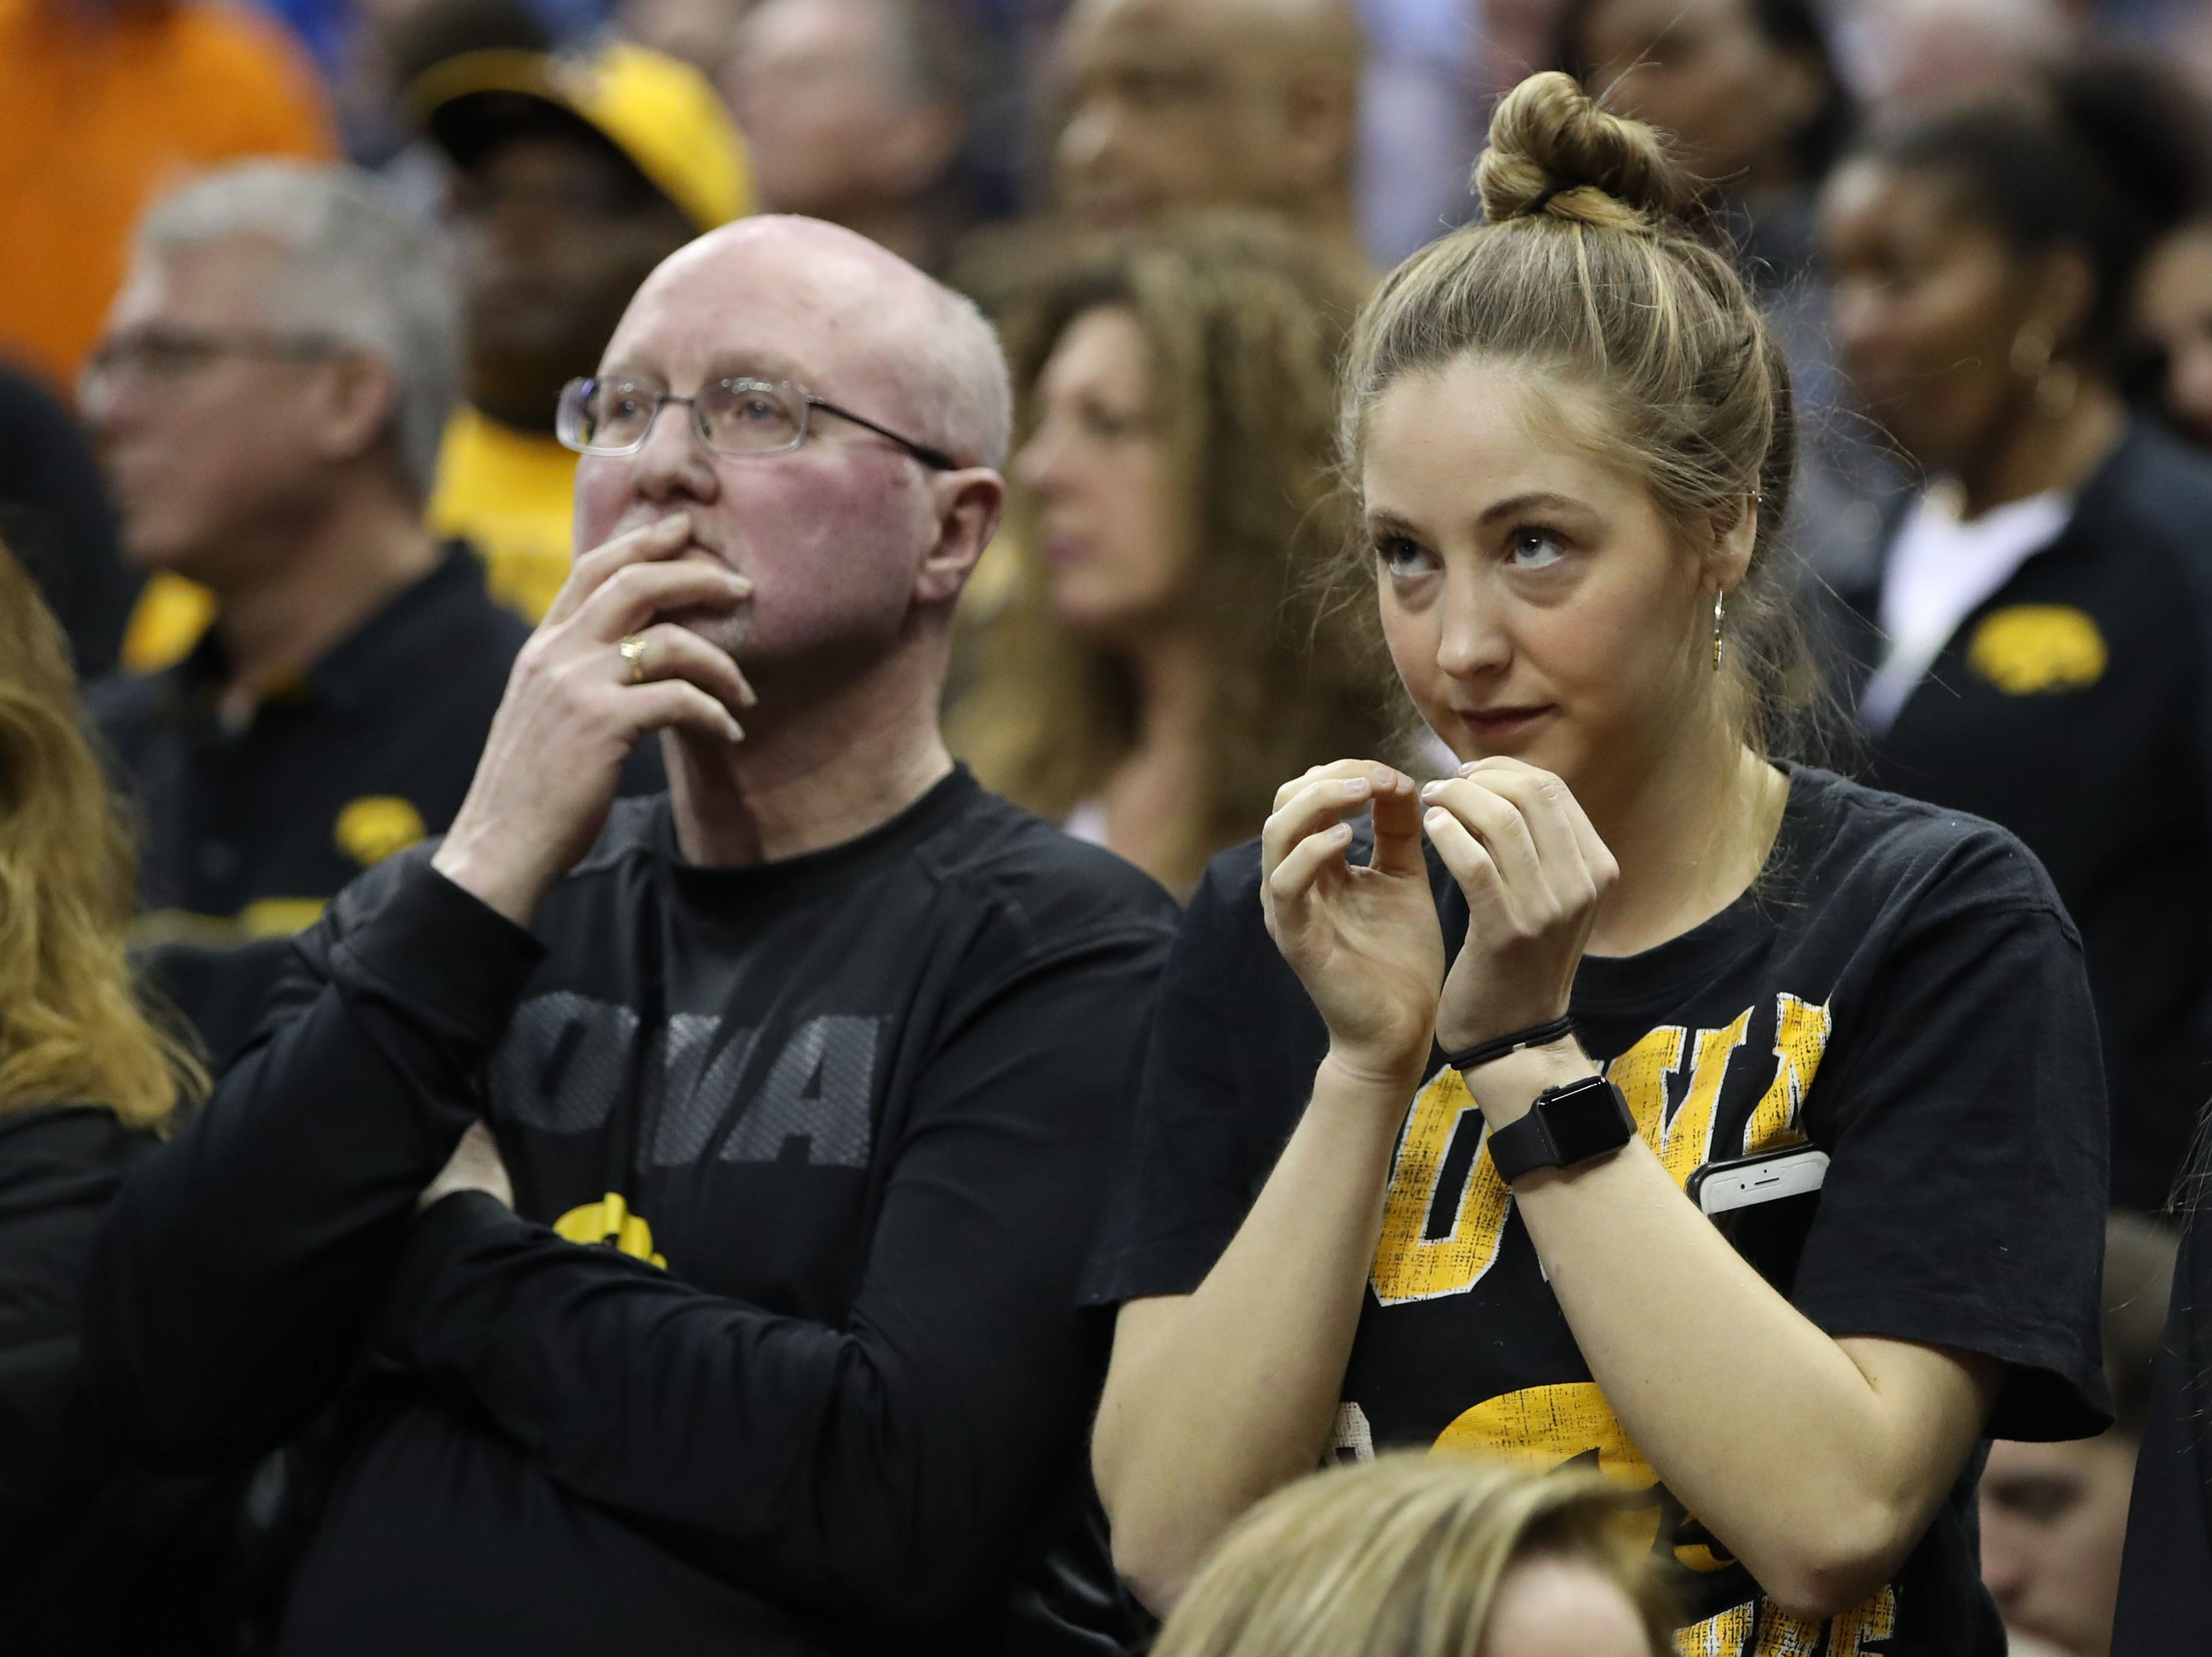 Iowa Hawkeyes fans watch the game against the Tennessee Volunteers in the second round of the 2019 NCAA Tournament at Nationwide Arena.